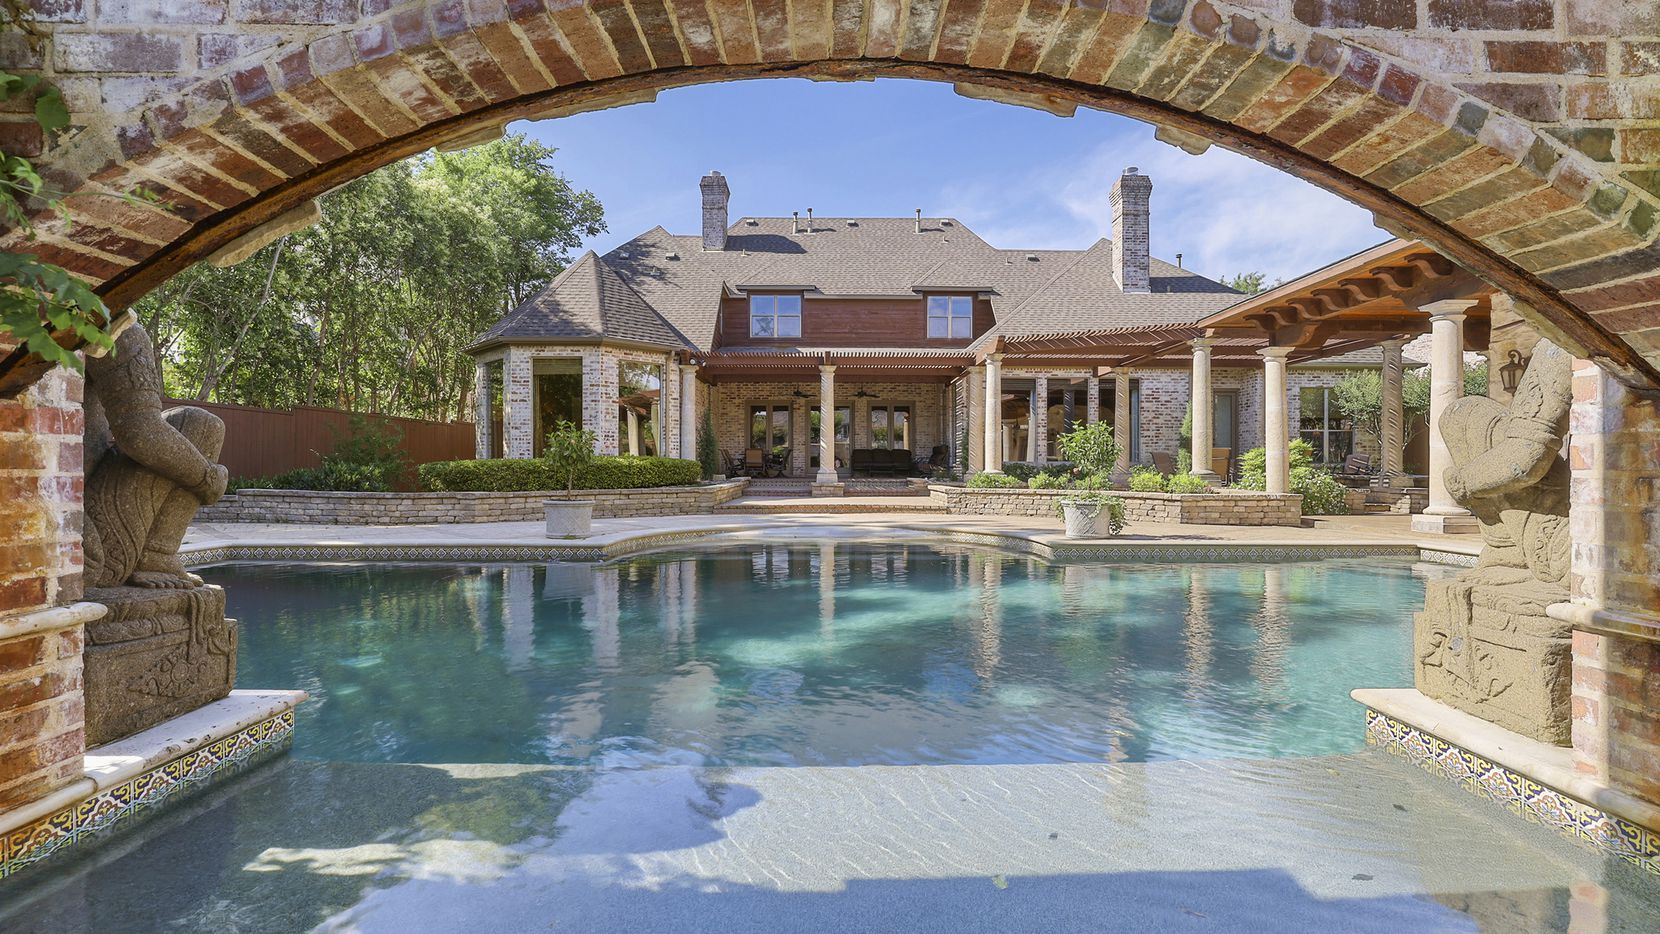 The five-bedroom home at 5964 Azalea Lane in Preston Hollow has a pool, covered patio and detached hot tub.